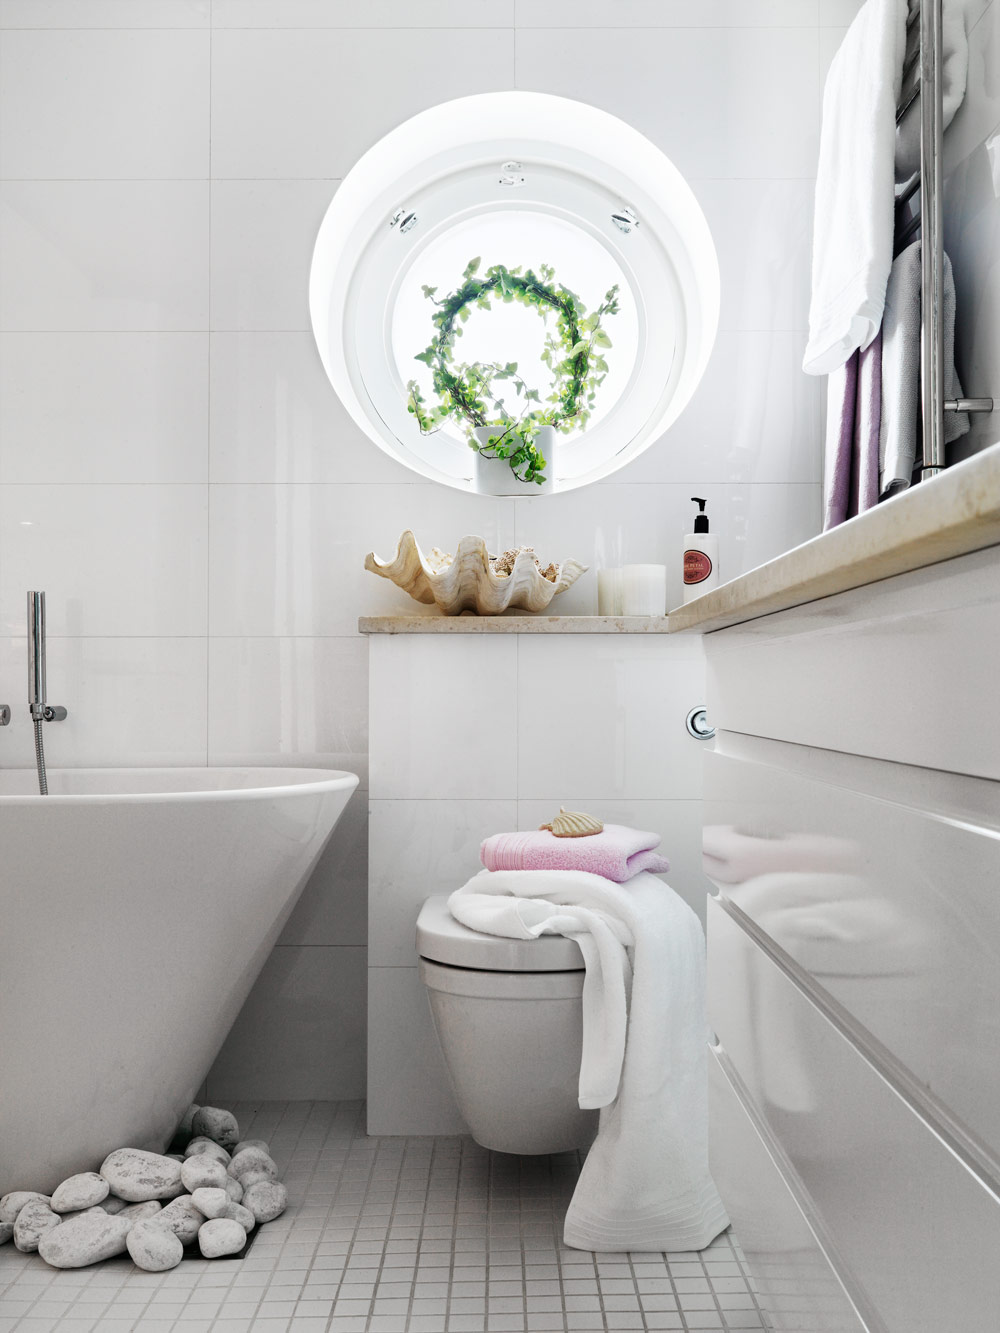 Stylish small bathroom with an unusual decor digsdigs for Unique small bathroom ideas